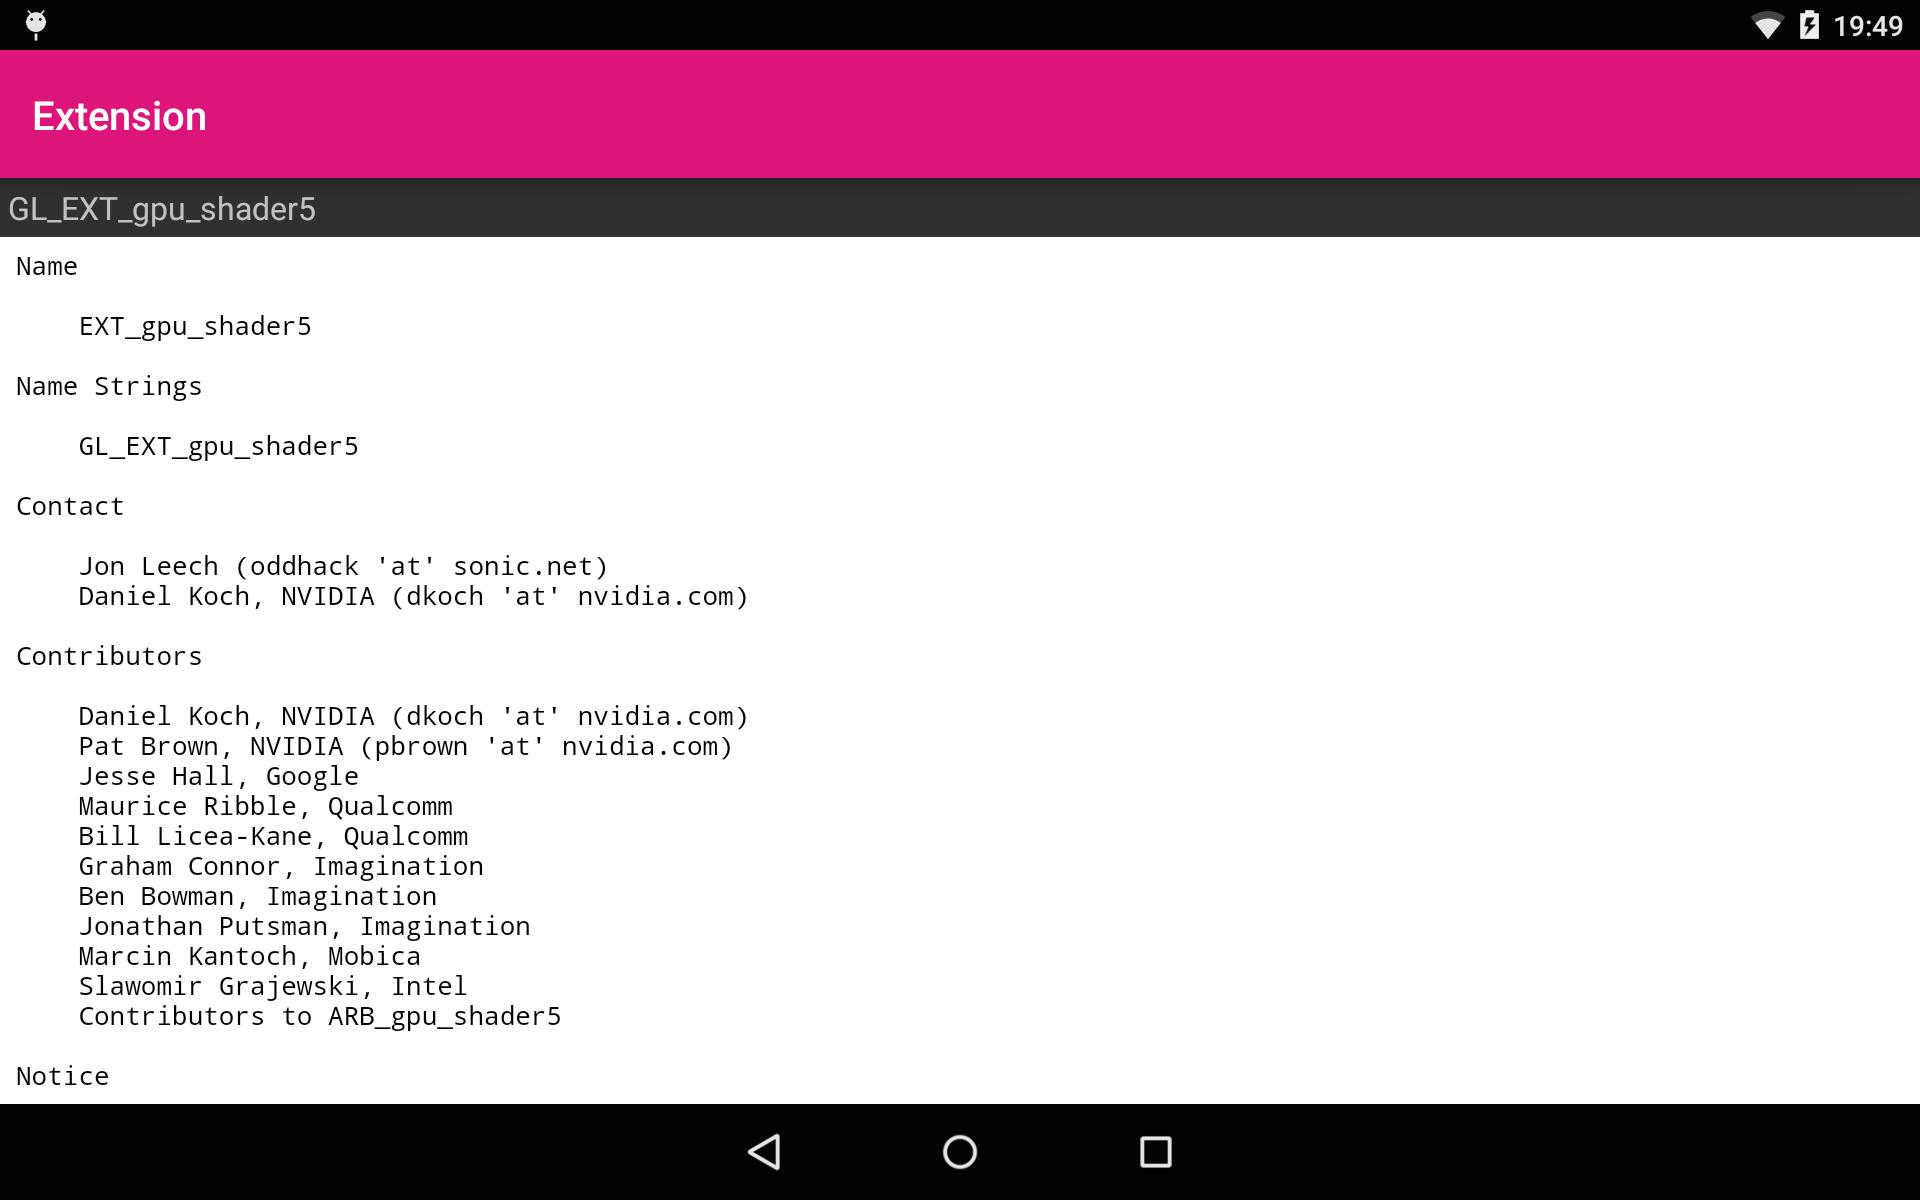 OpenGL ES Extensions - The OpenGL/Vulkan Utility for Android